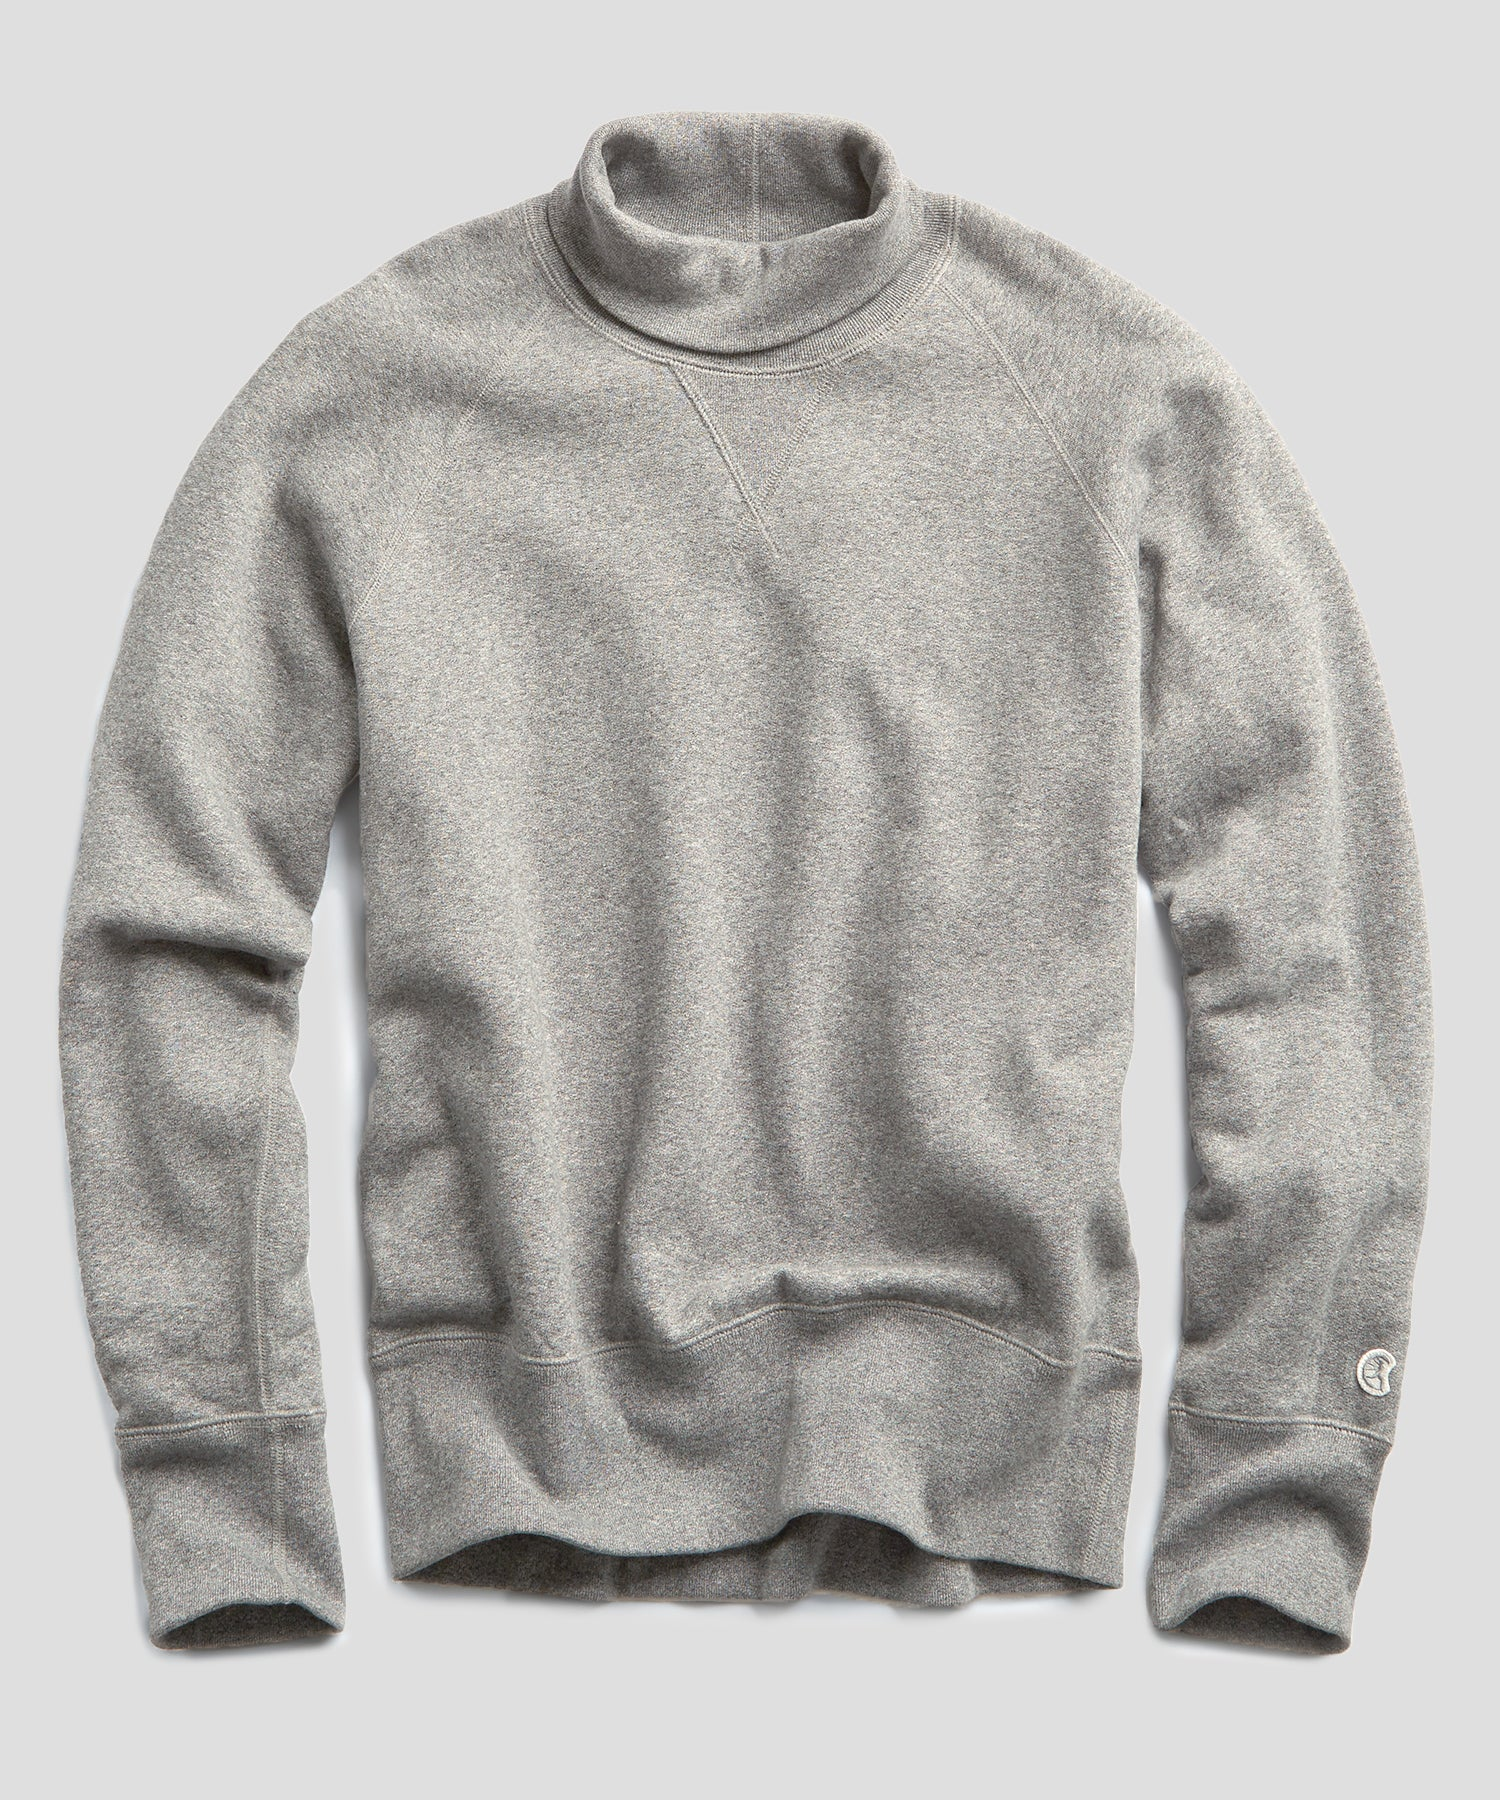 Fleece Turtleneck Sweatshirt in Light Grey Mix